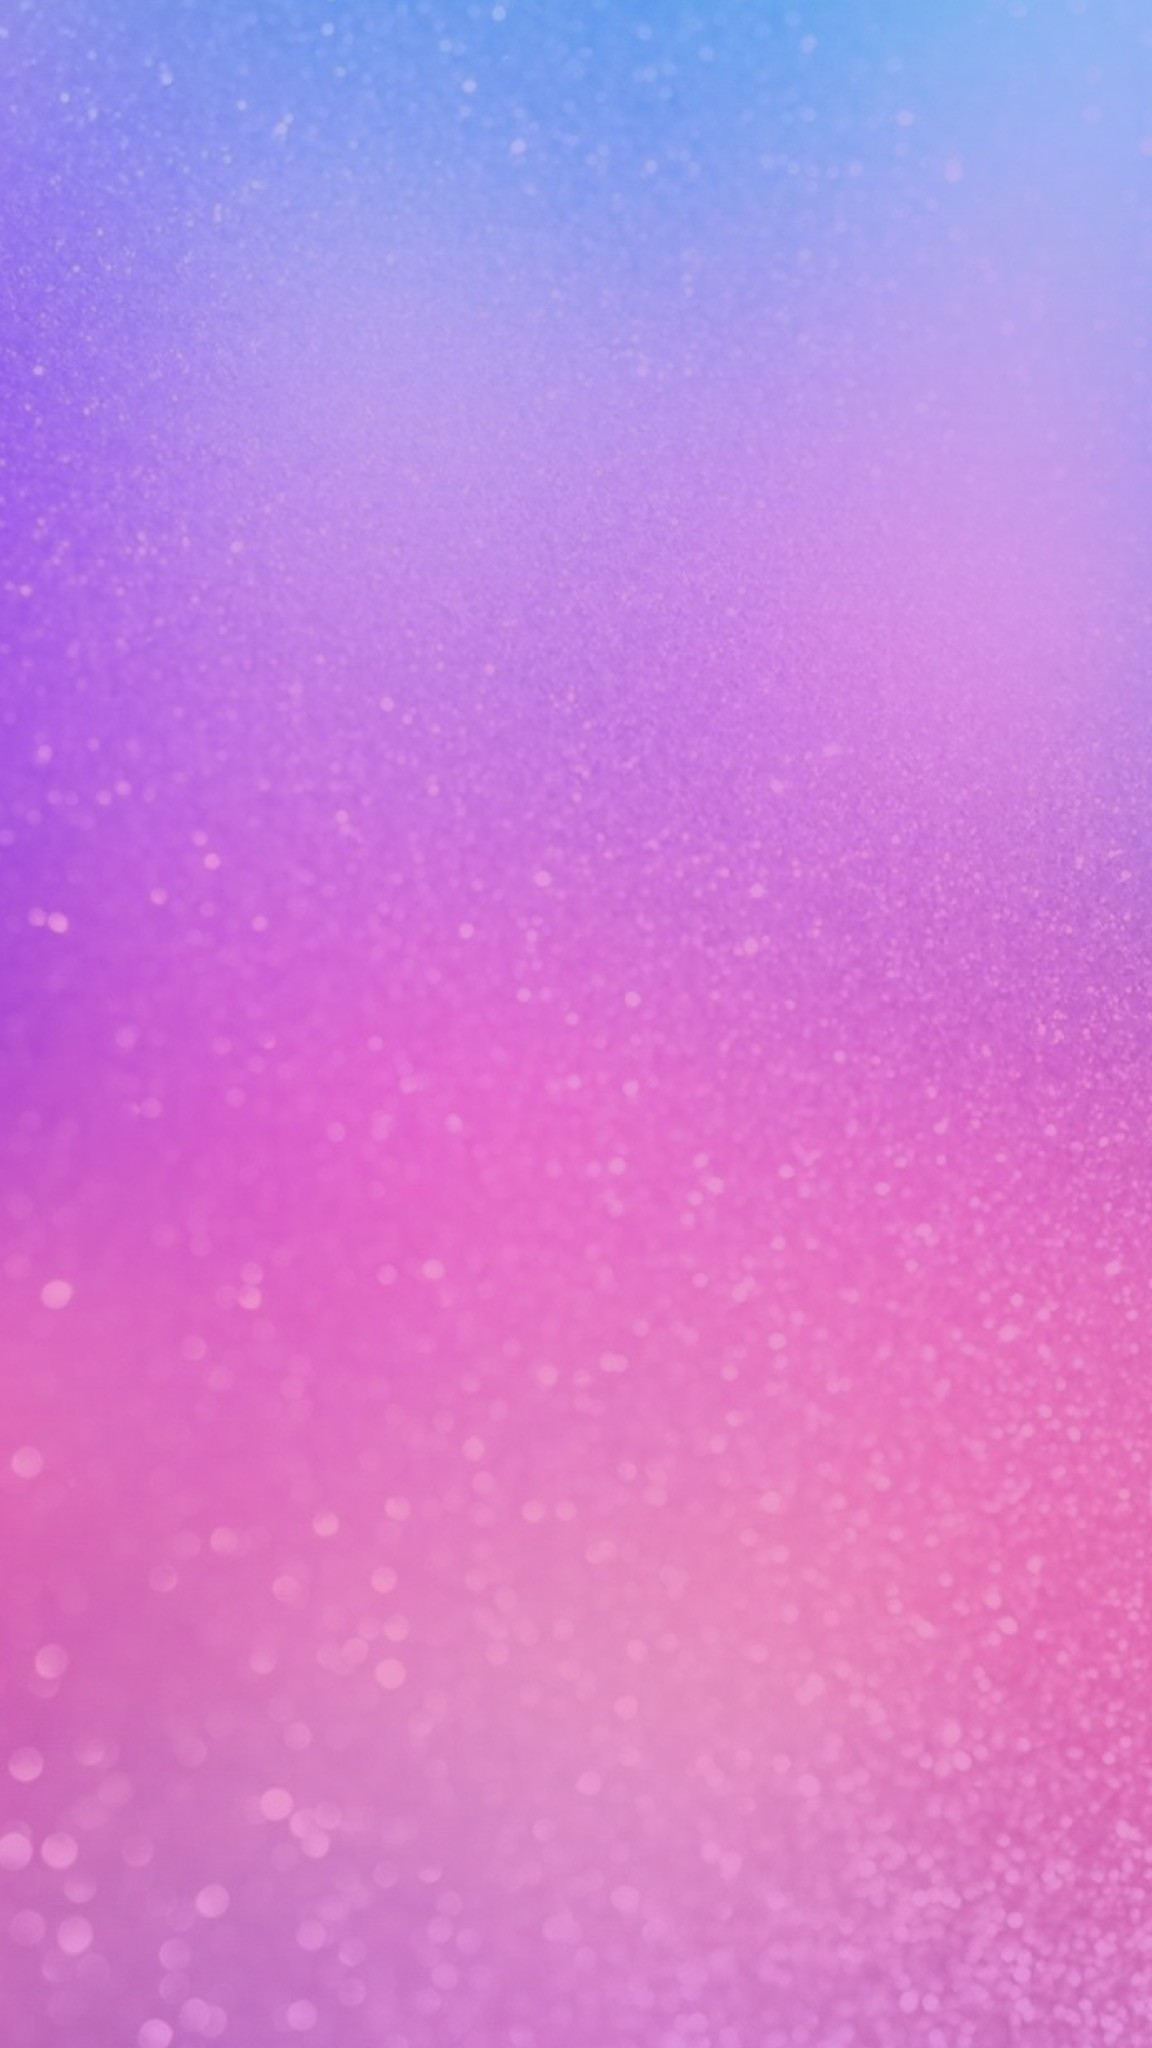 1152x2048 Pink Glitter Phone Wallpaper. Original image not by me! I just made the  ombré/gradient. Glitter,